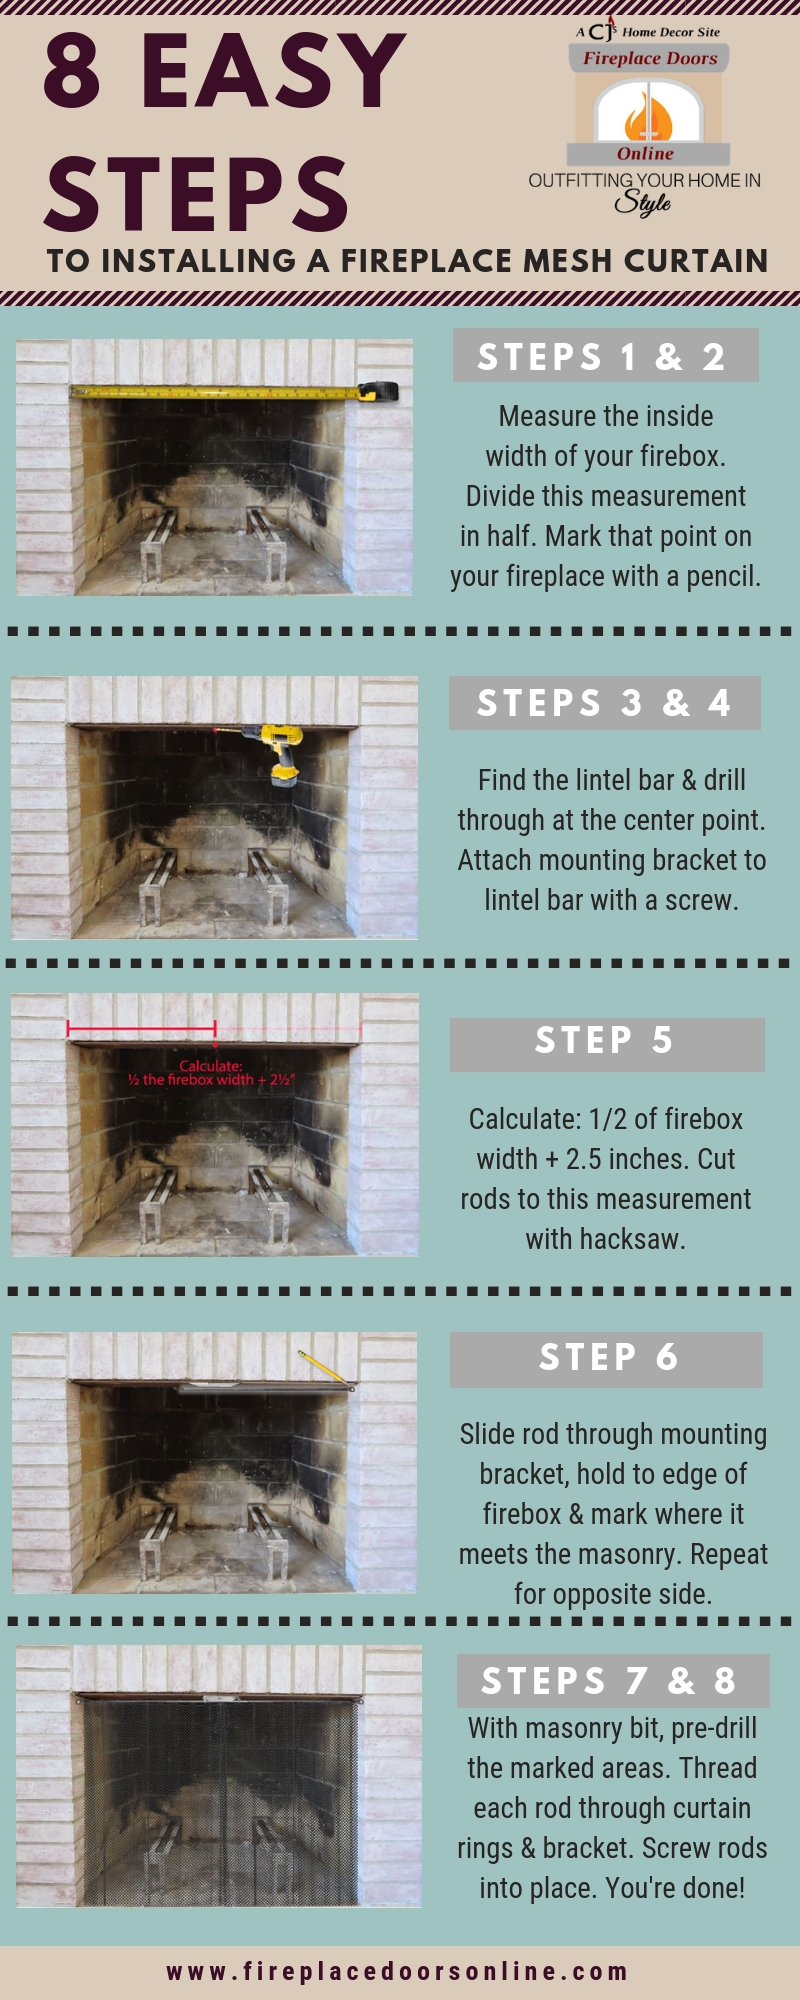 8 Easy Steps to Installing a Fireplace Mesh Curtain infographic